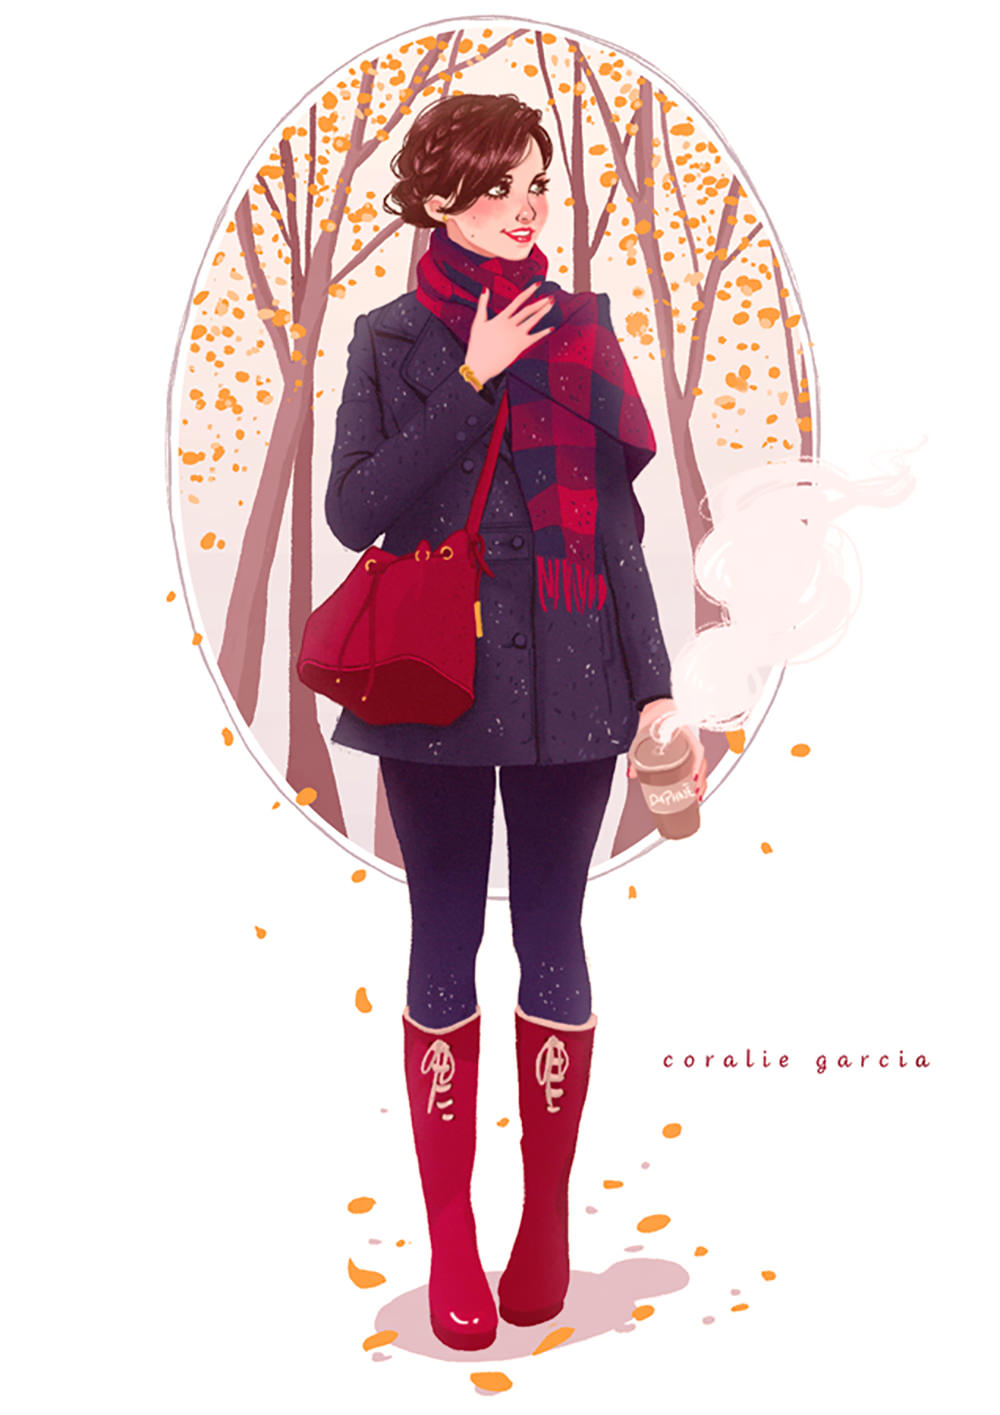 Blog-Mode-And-The-City-Lifestyle-Cinq-Petites-Choses-207-illustration-coralie-garcia